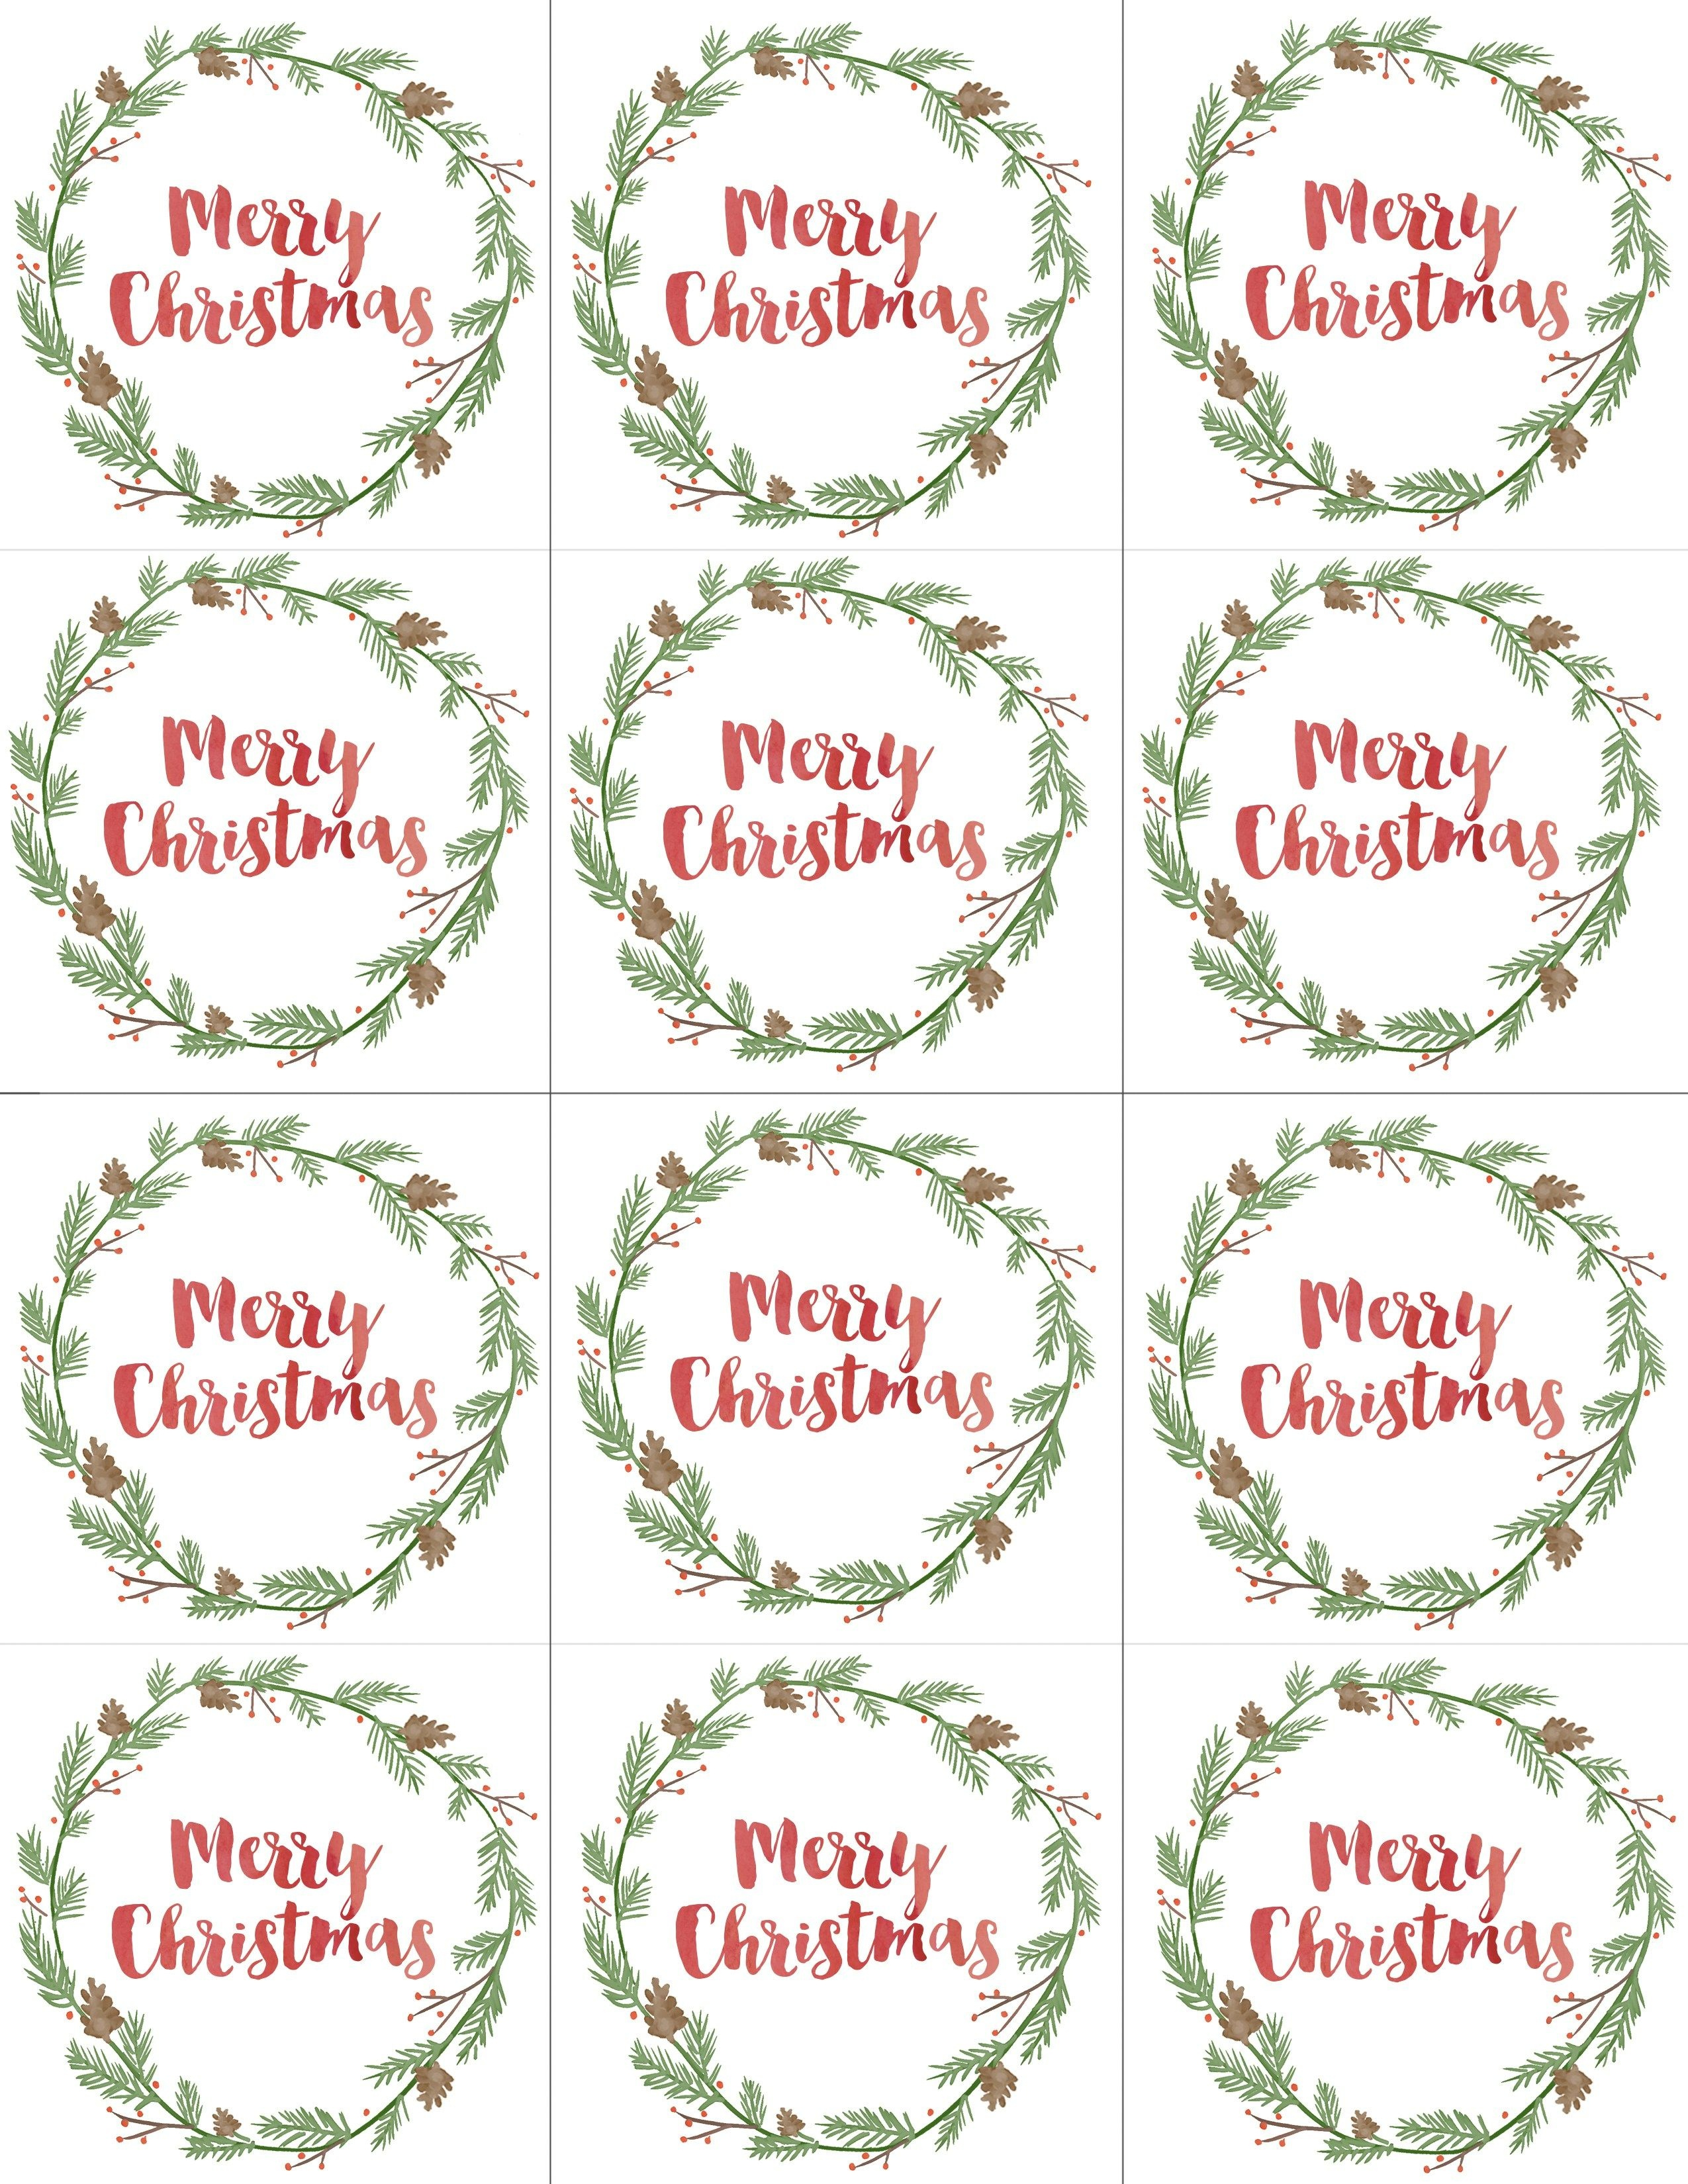 Hand Painted Gift Tags Free Printable | Christmas | Christmas Gift - Free Printable Gift Tags Personalized